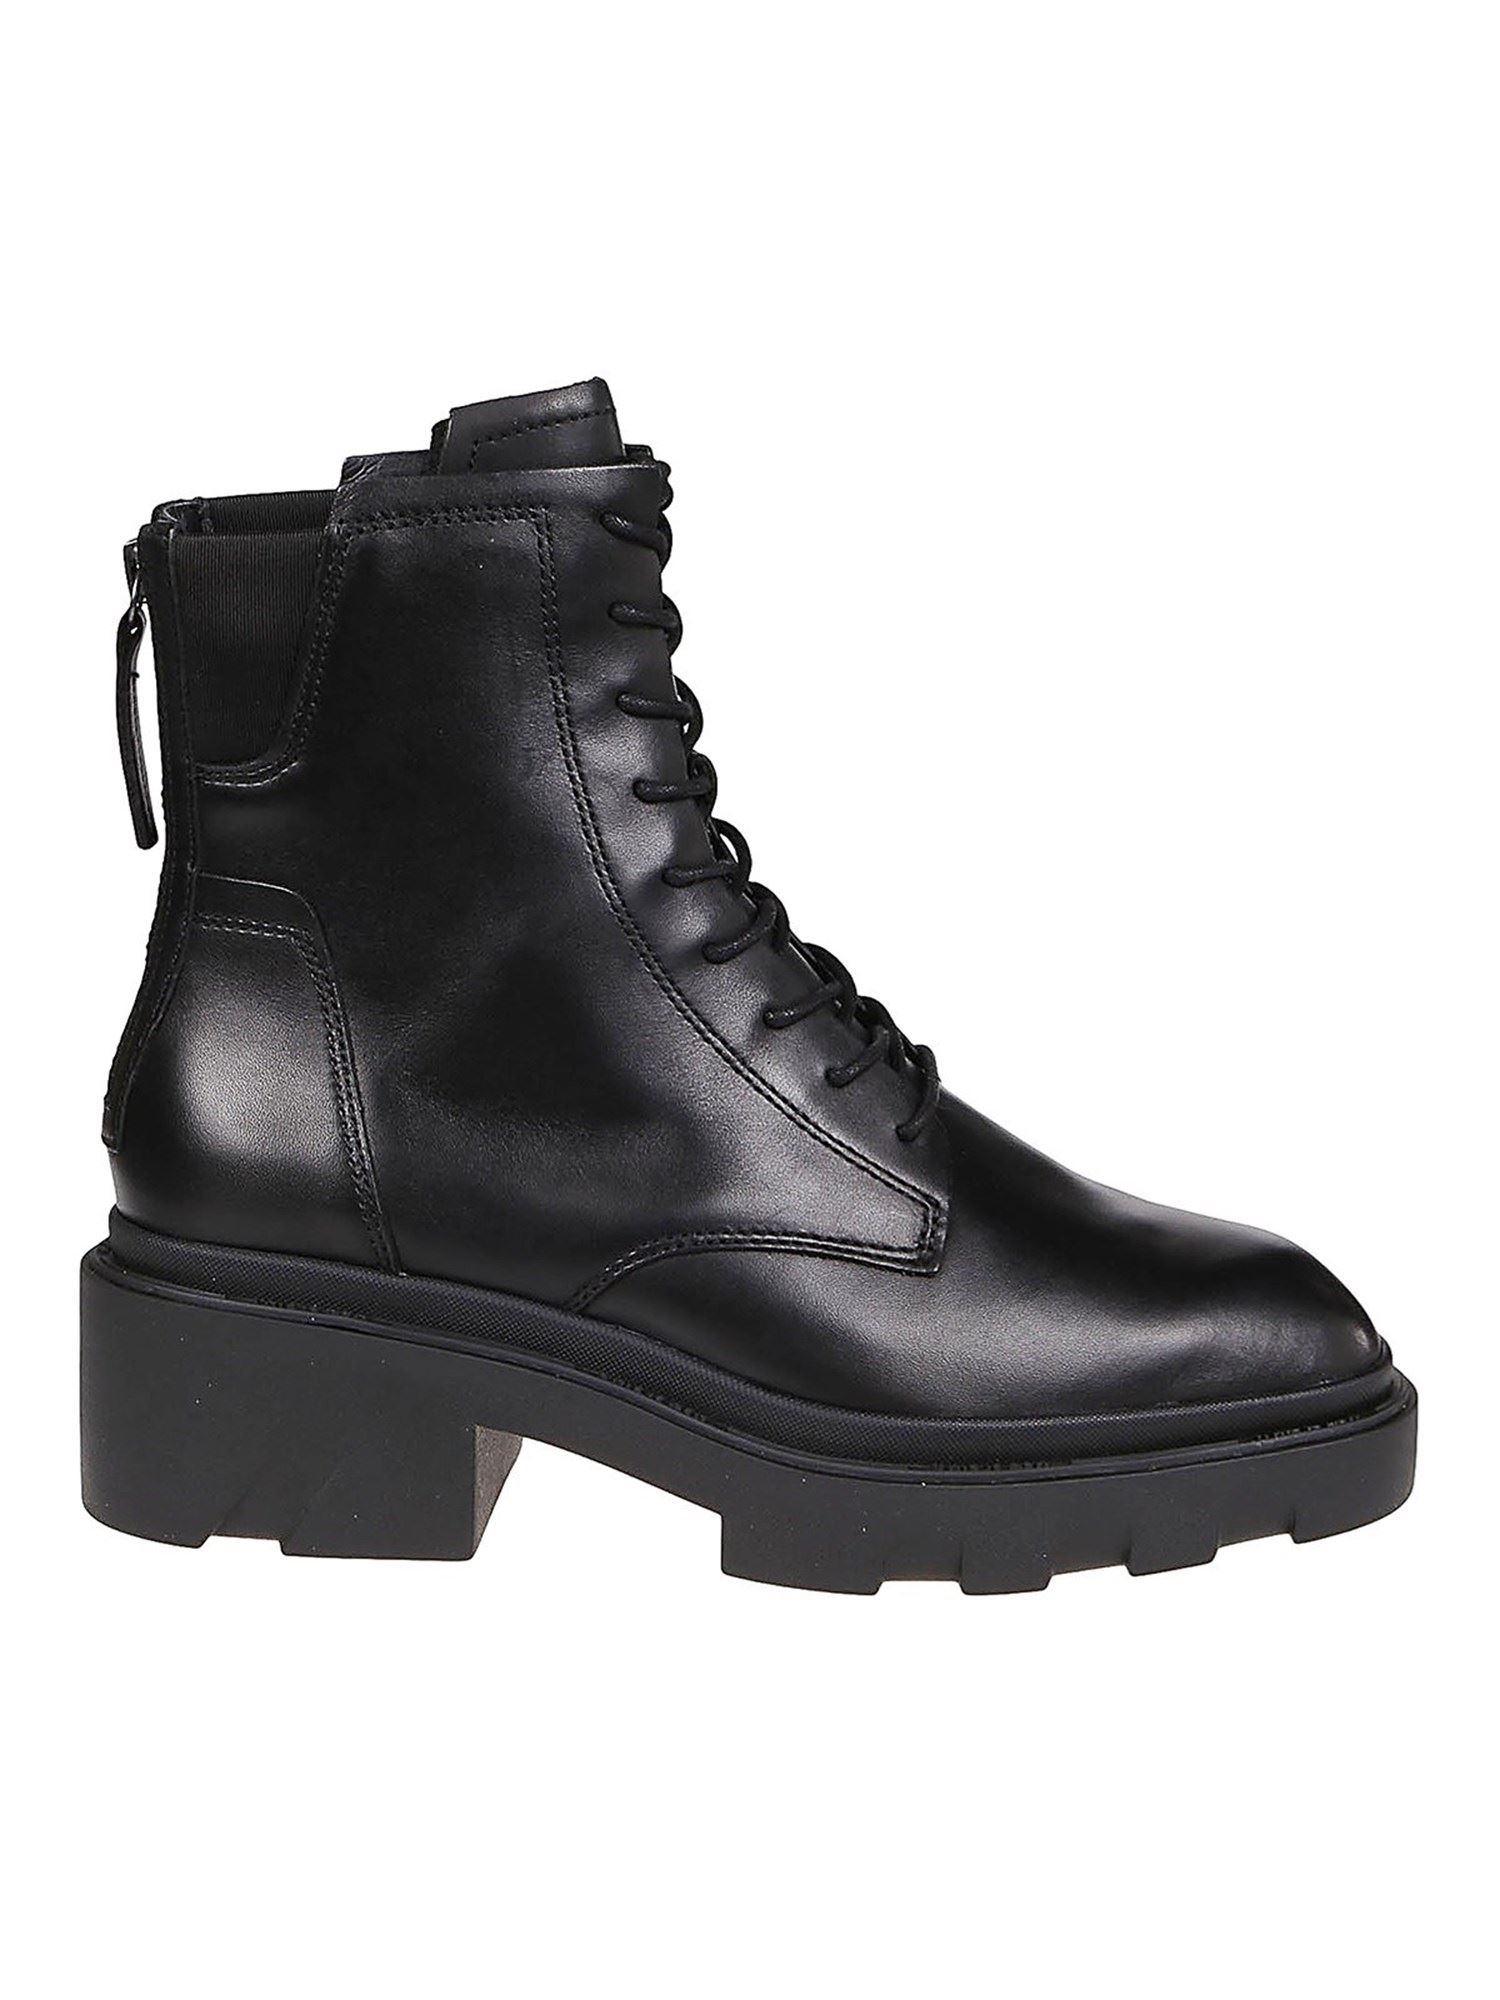 Ash MOODY 01 LACE-UP BOOTIES IN BLACK